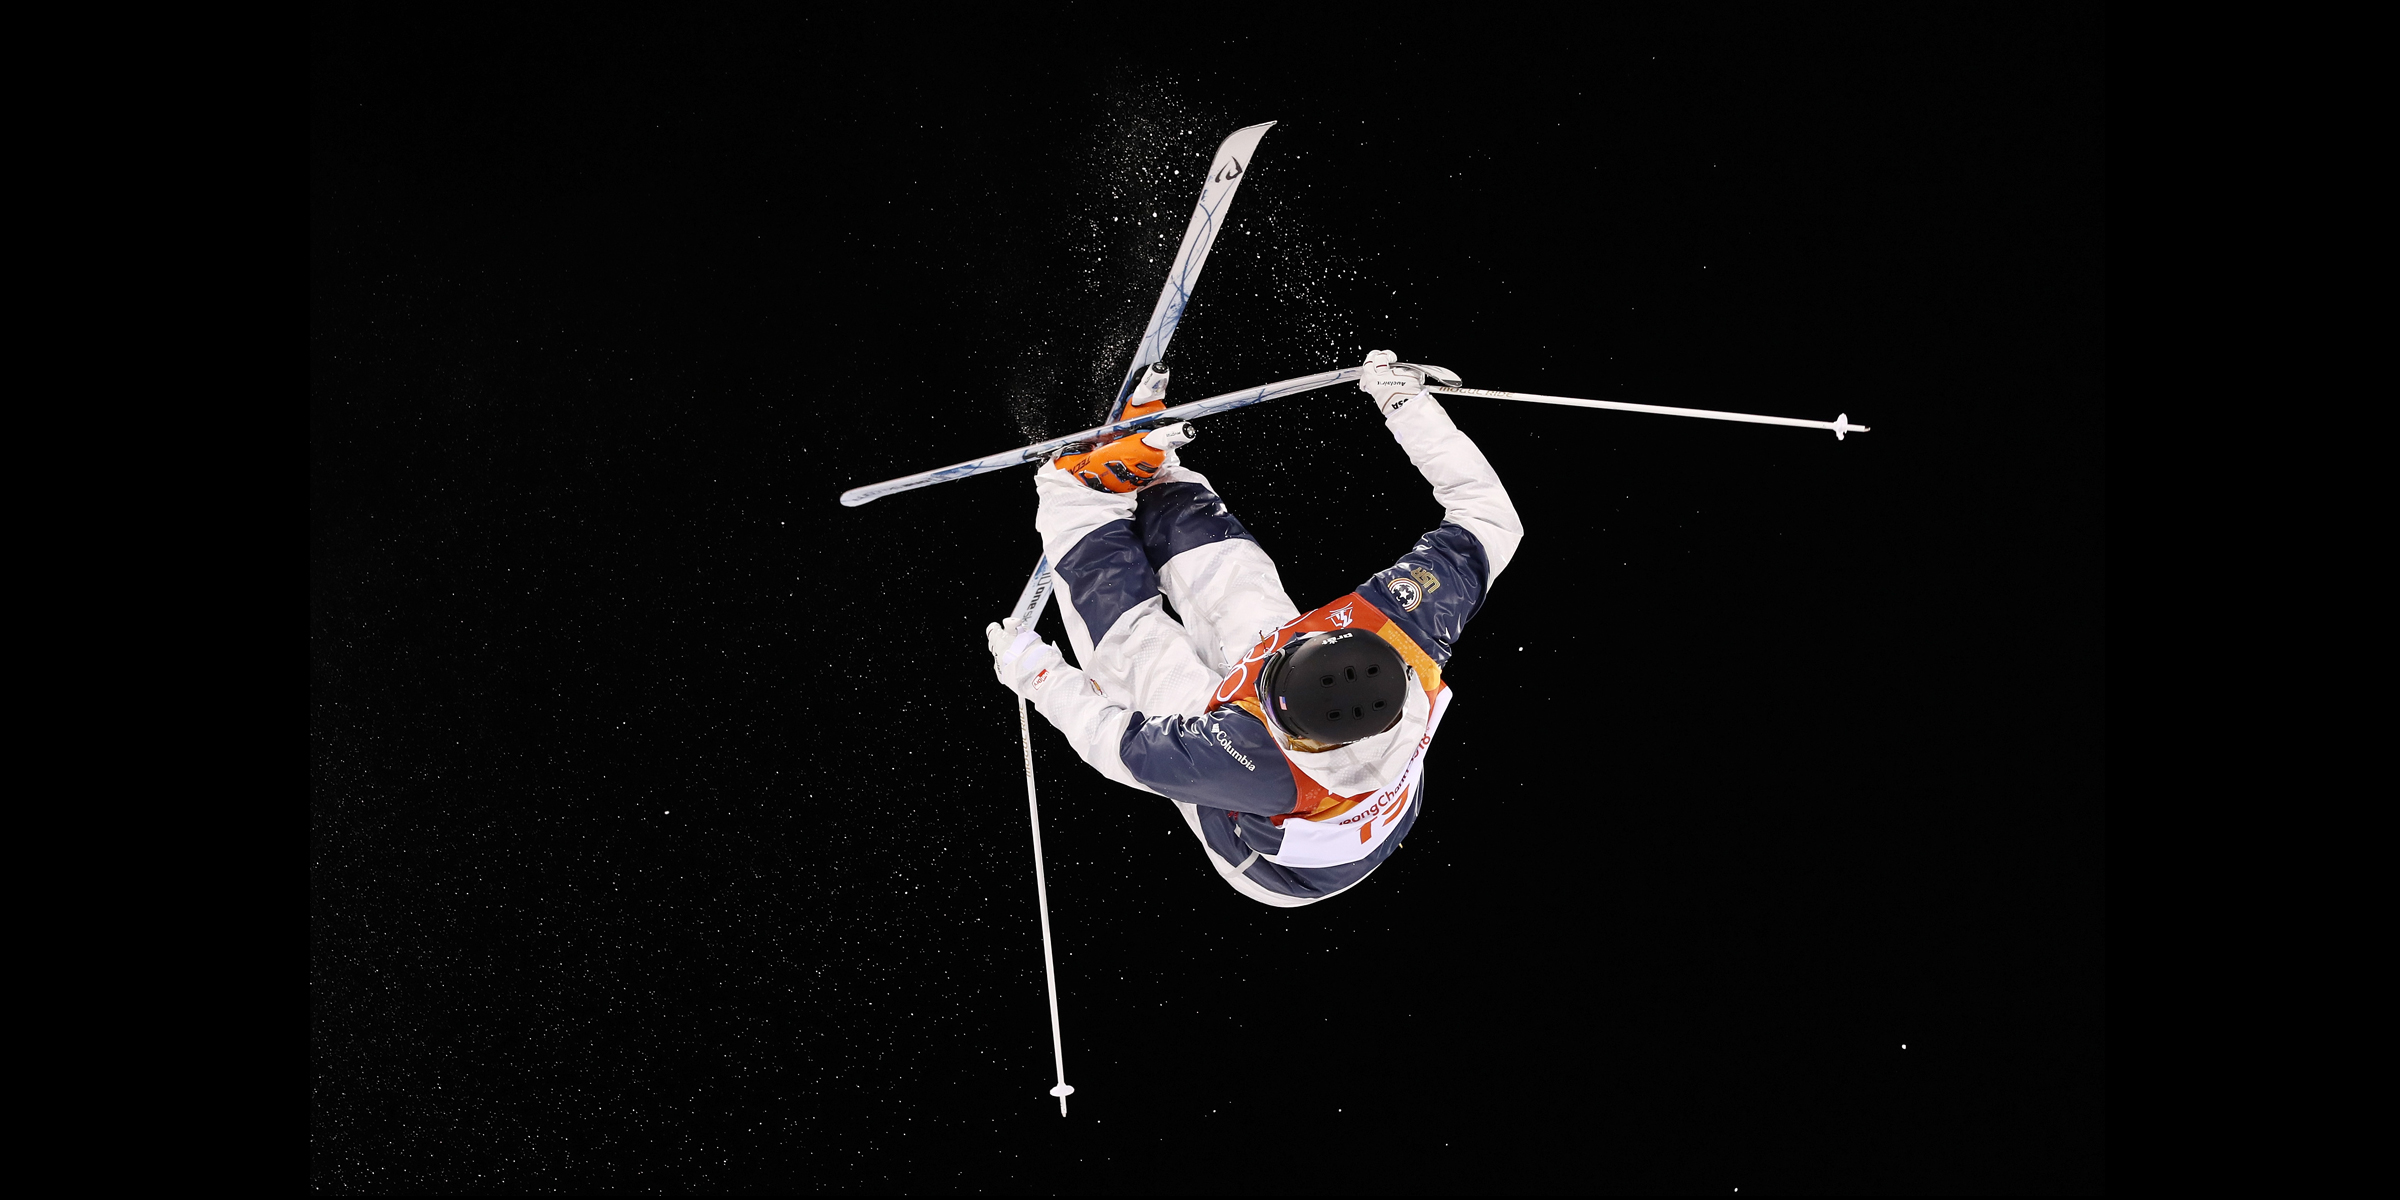 Casey Andringa finished fifth in the moguls finals at the 2018 Olympic Winter Games at Phoenix Snow Park Monday. (Getty Images - Cameron Spencer)